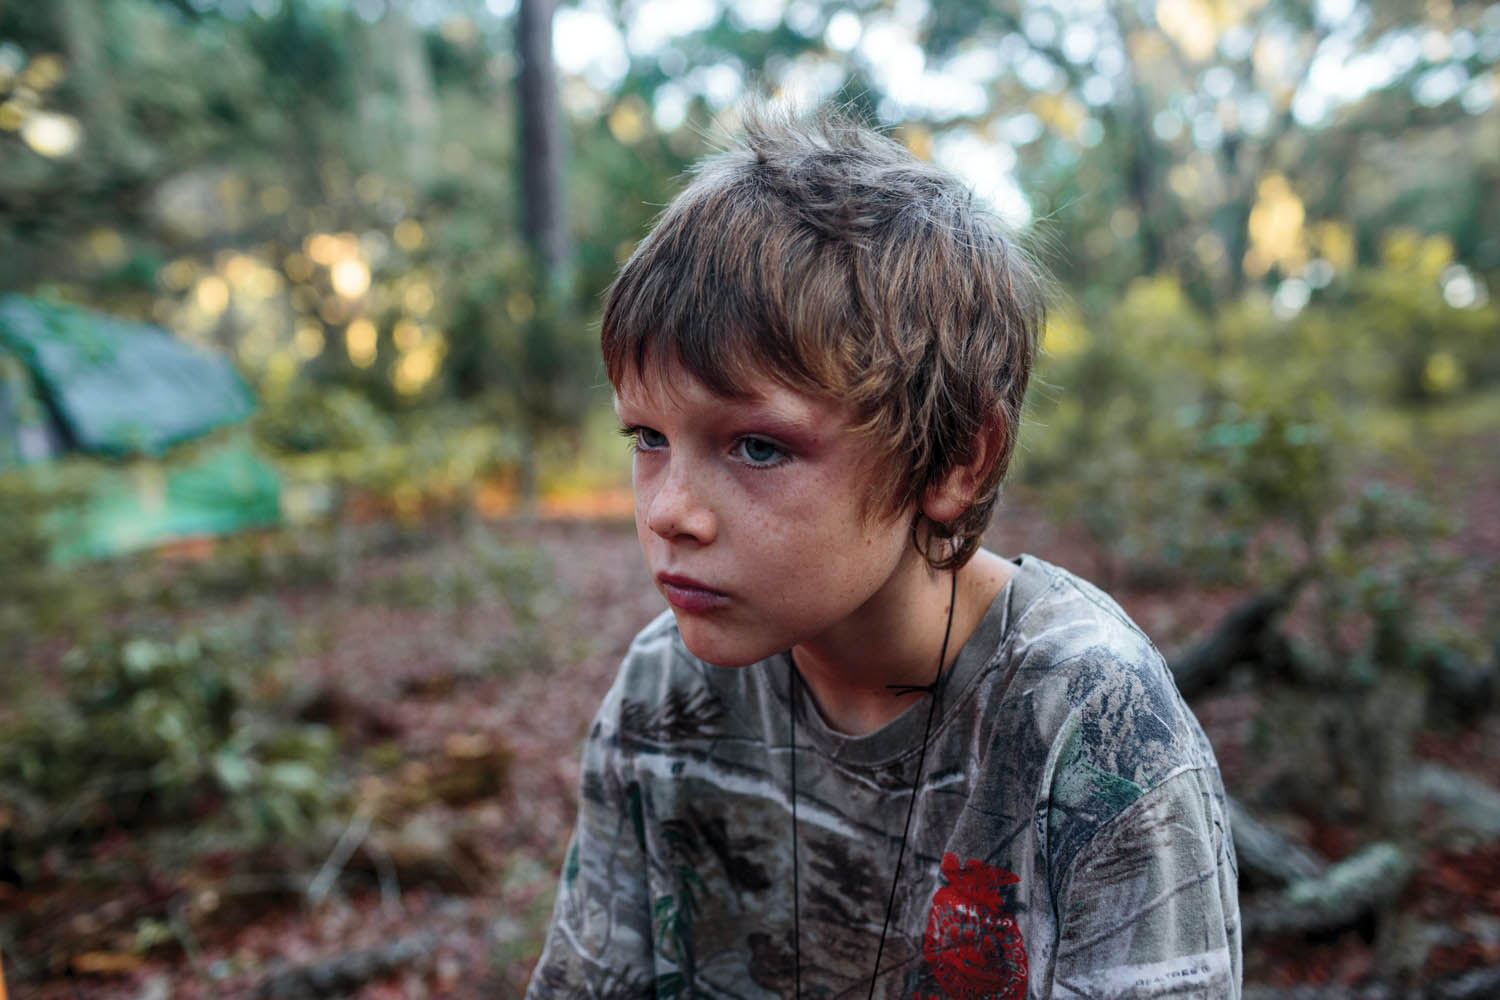 Austin, nine, takes a break from gathering wood for shelter, as part of an exercise at the North Florida Survival School camp, in Florida's Ocala National Forest. The camp's curriculum includes survival-skills training, firearm safety, daily prayer sessions, and hymns. Photographed by Sarah Blesener